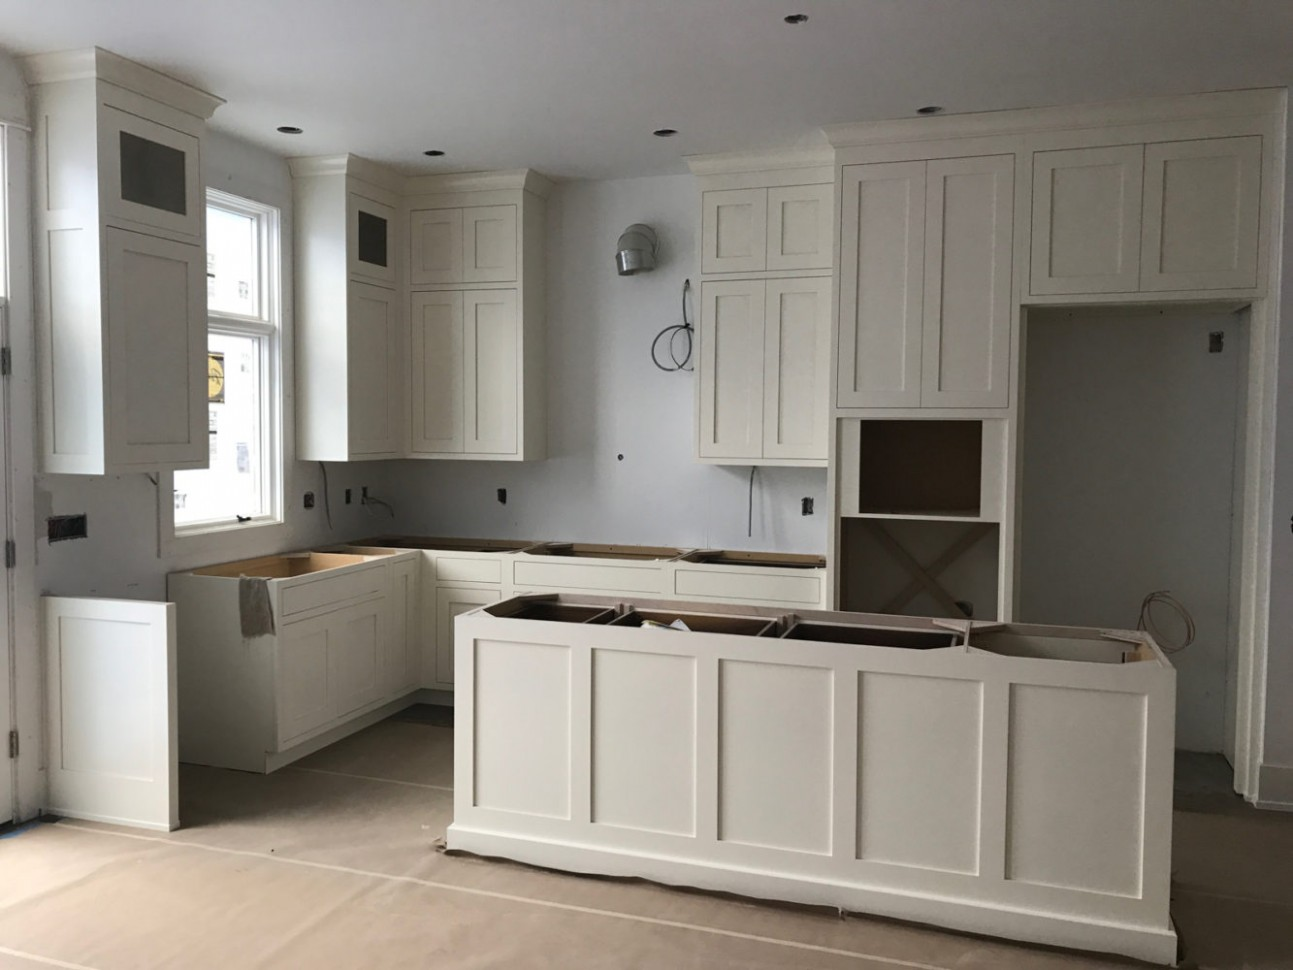 New Construction in Lincoln Park Chicago  Construction Project  - Donate Kitchen Cabinets Chicago